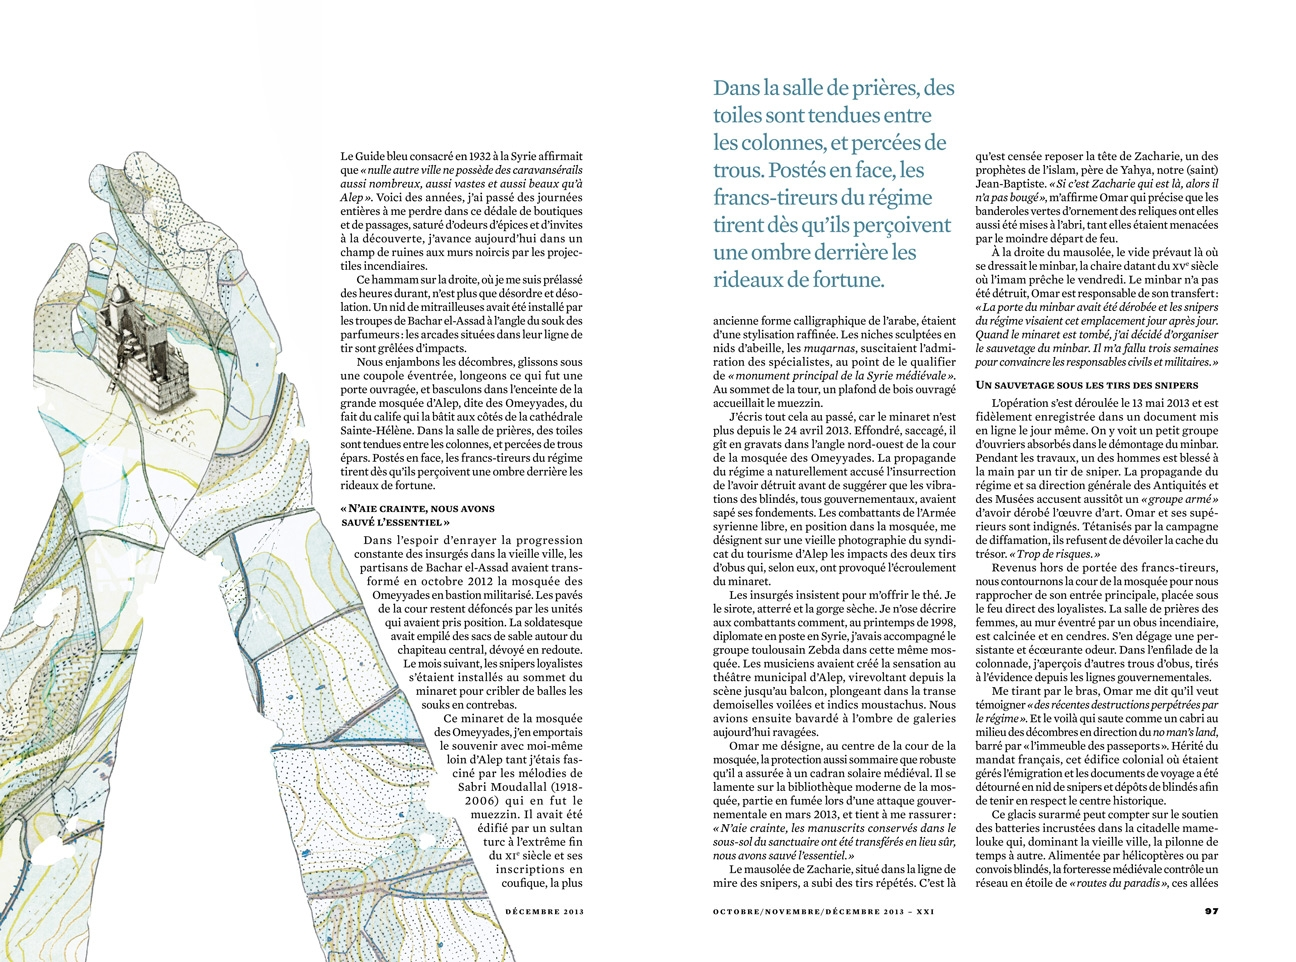 yasmine gateau, XXI, illustration, editorial illustration, le gardien d'Alep, map